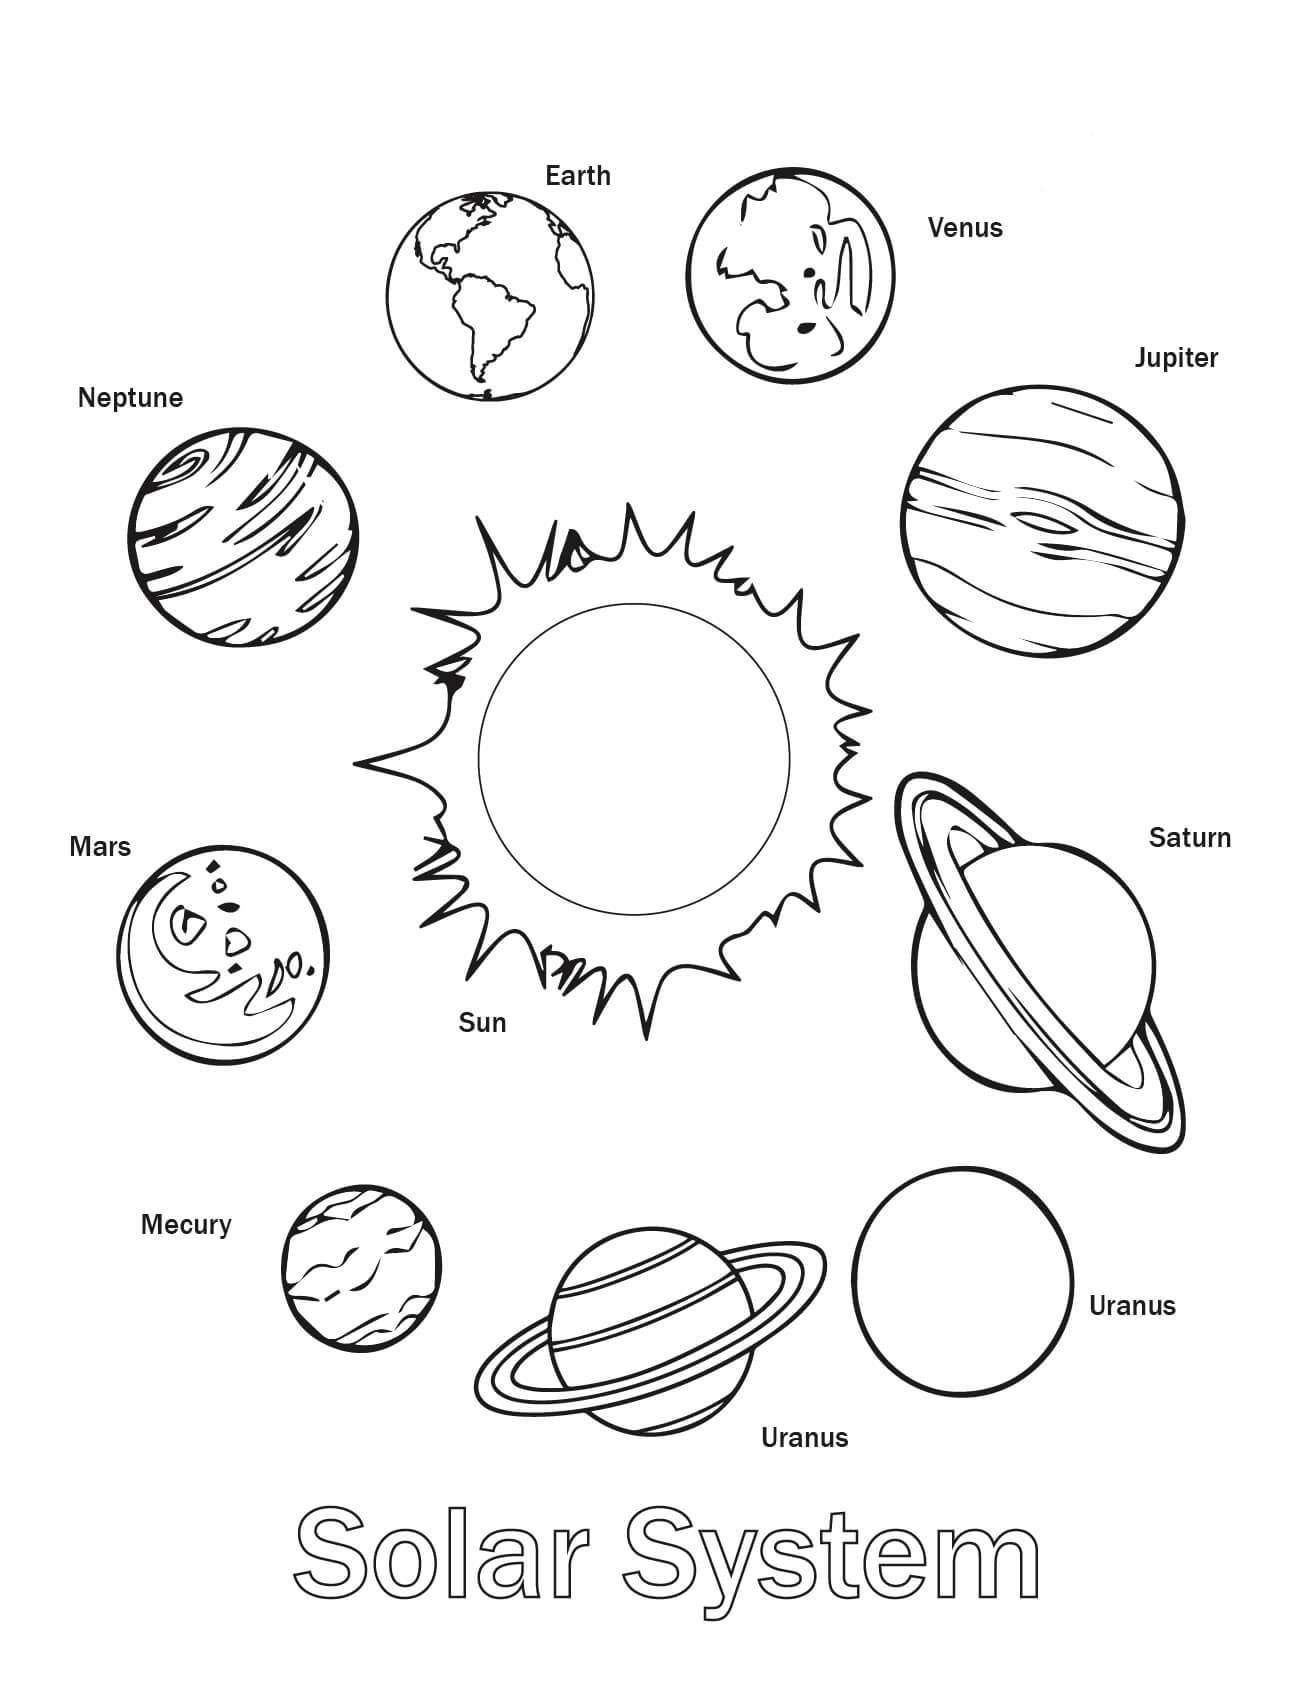 Free 6th Grade Science Worksheets Free Printable solar System Coloring for Kids Planets